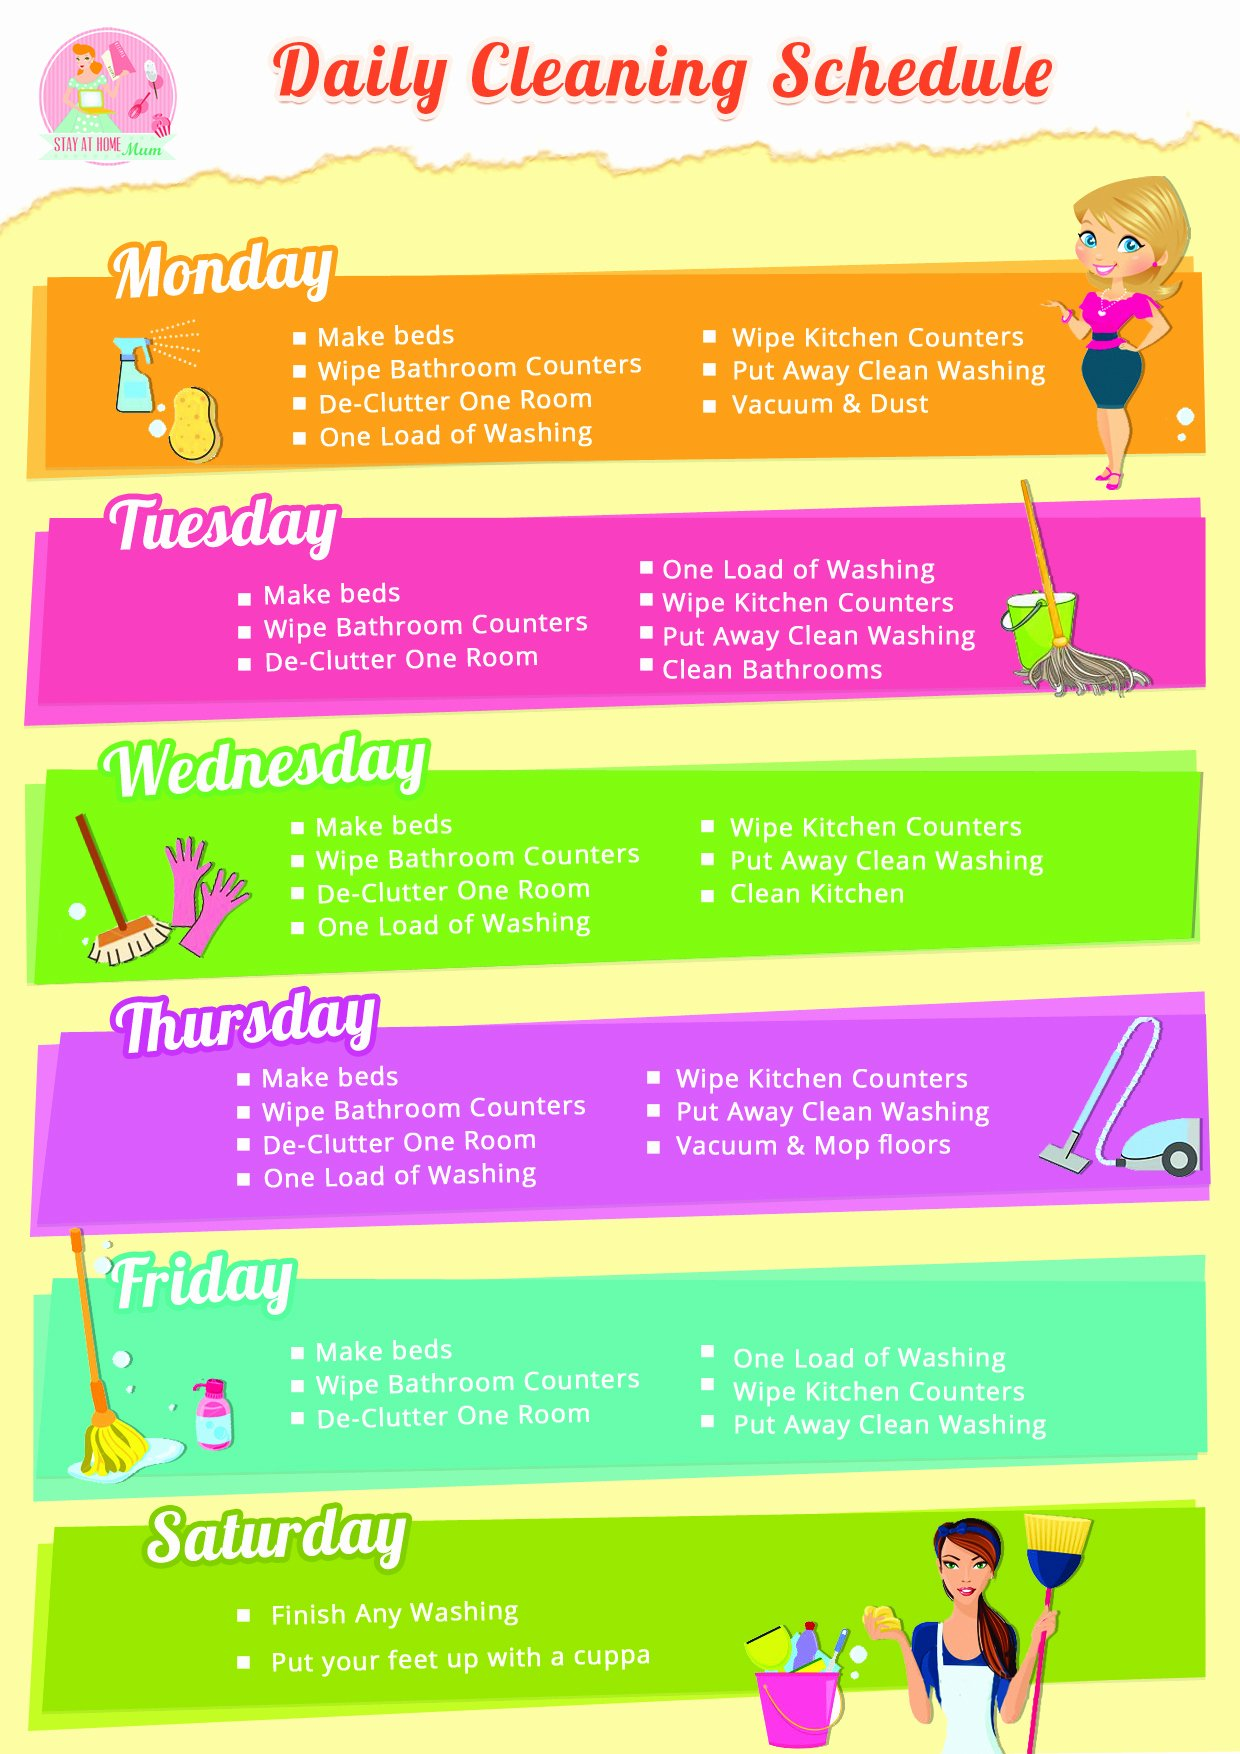 House Cleaning Schedule Template Elegant Daily Home Cleaning Schedule